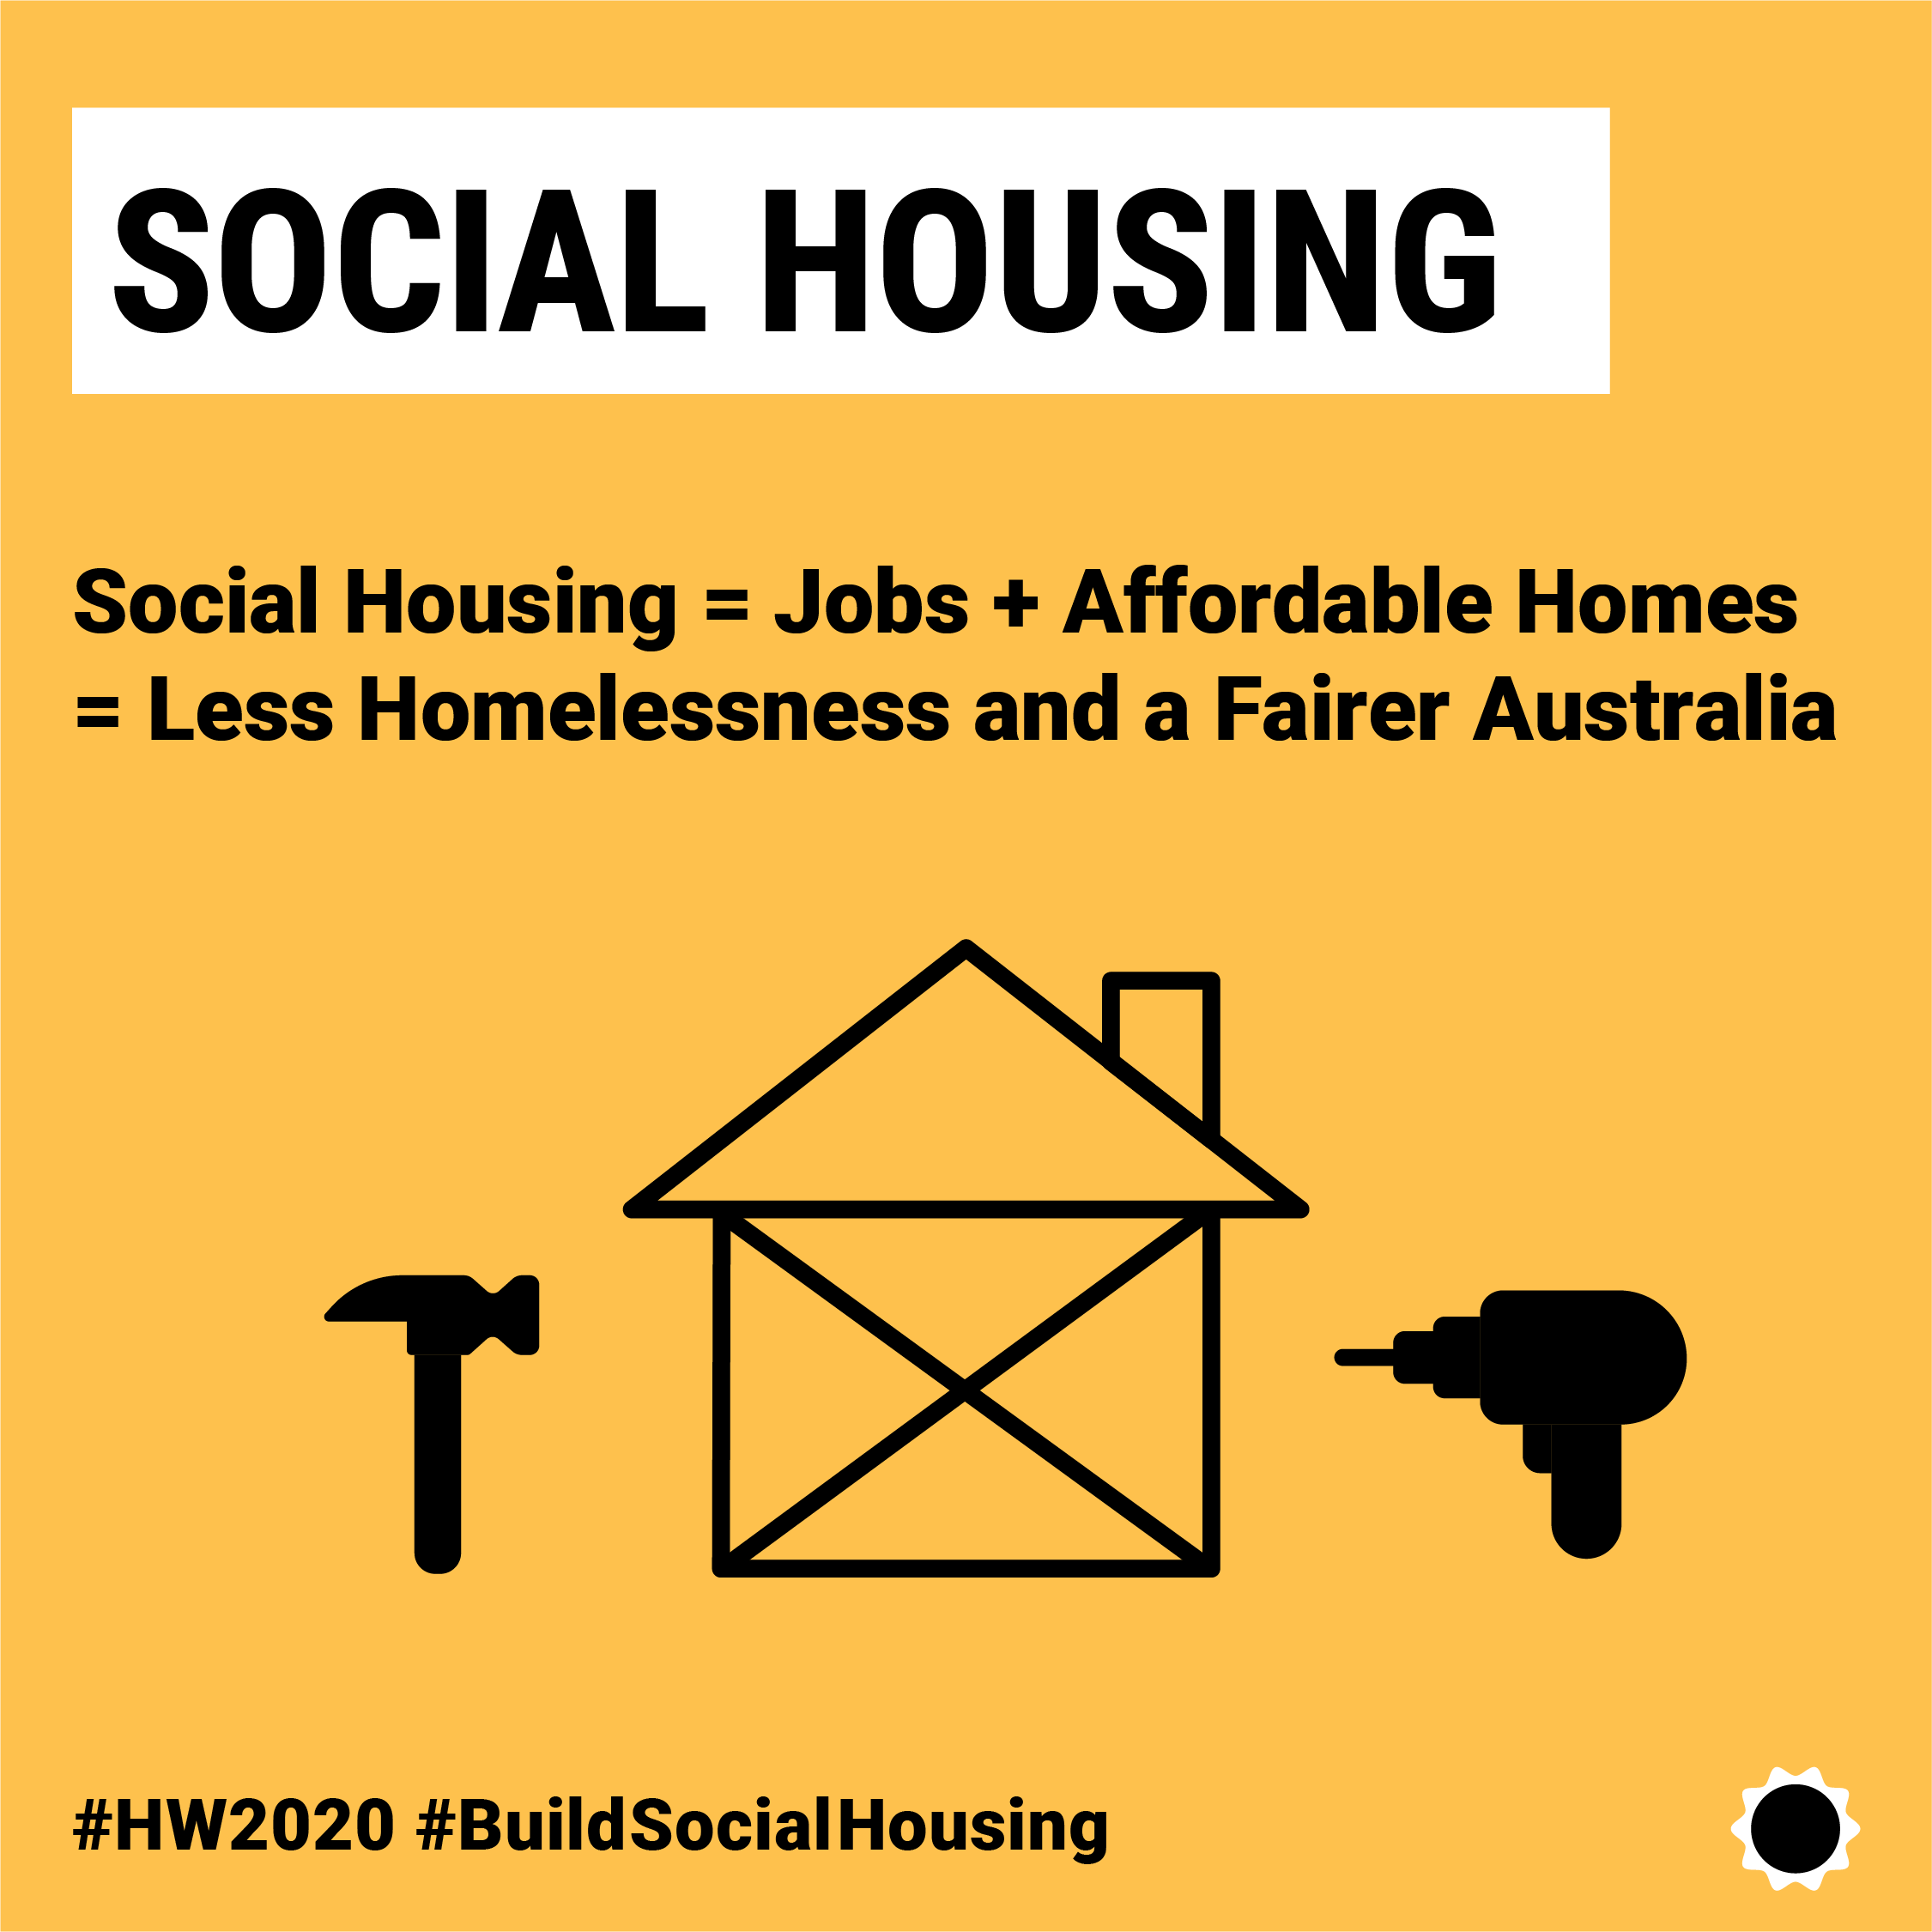 Social Housing = Jobs + Affordable Homes = Less Homelessness and a Fairer Australia